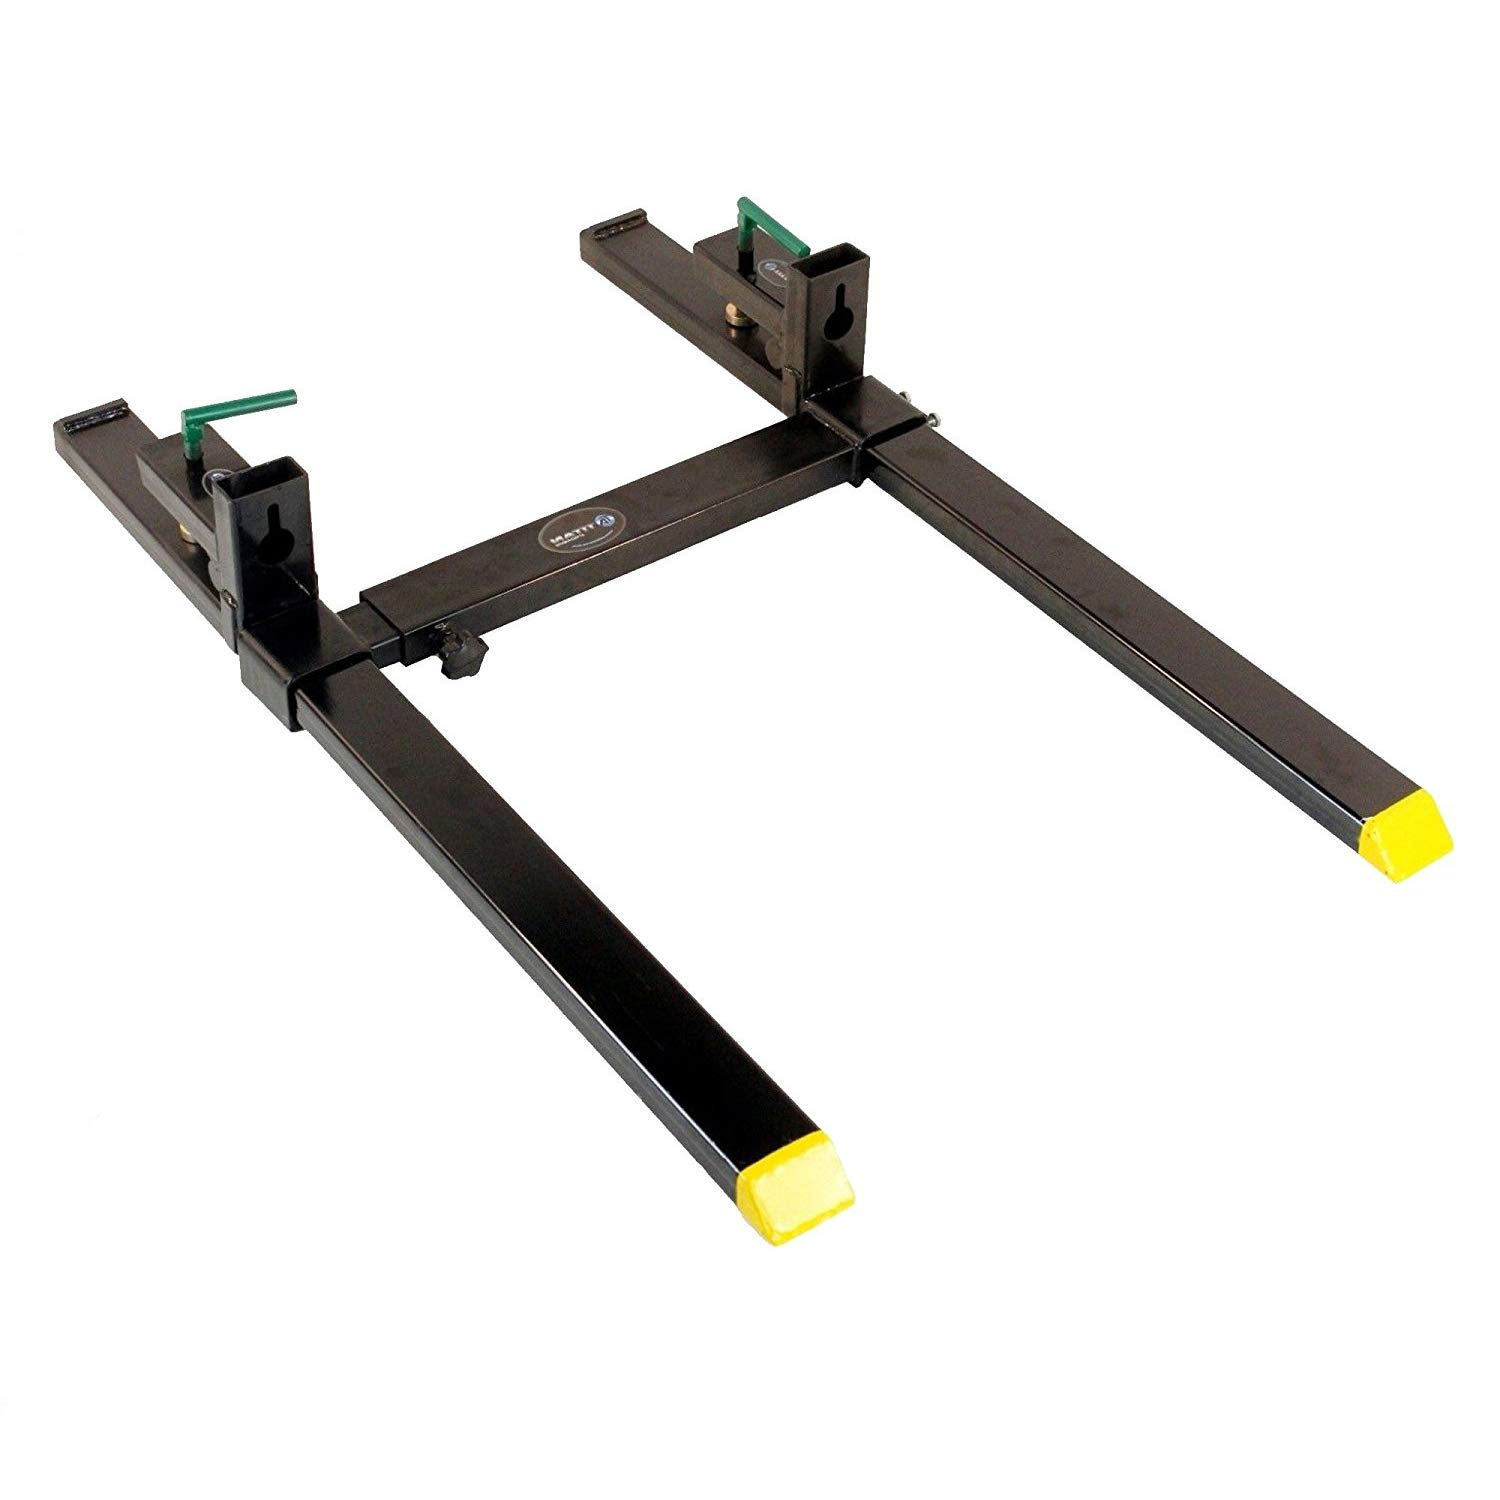 Titan Clamp on Heavy Duty Pallet Forks and adjustable Stabilizer Bar for loaders by Titan Attachments